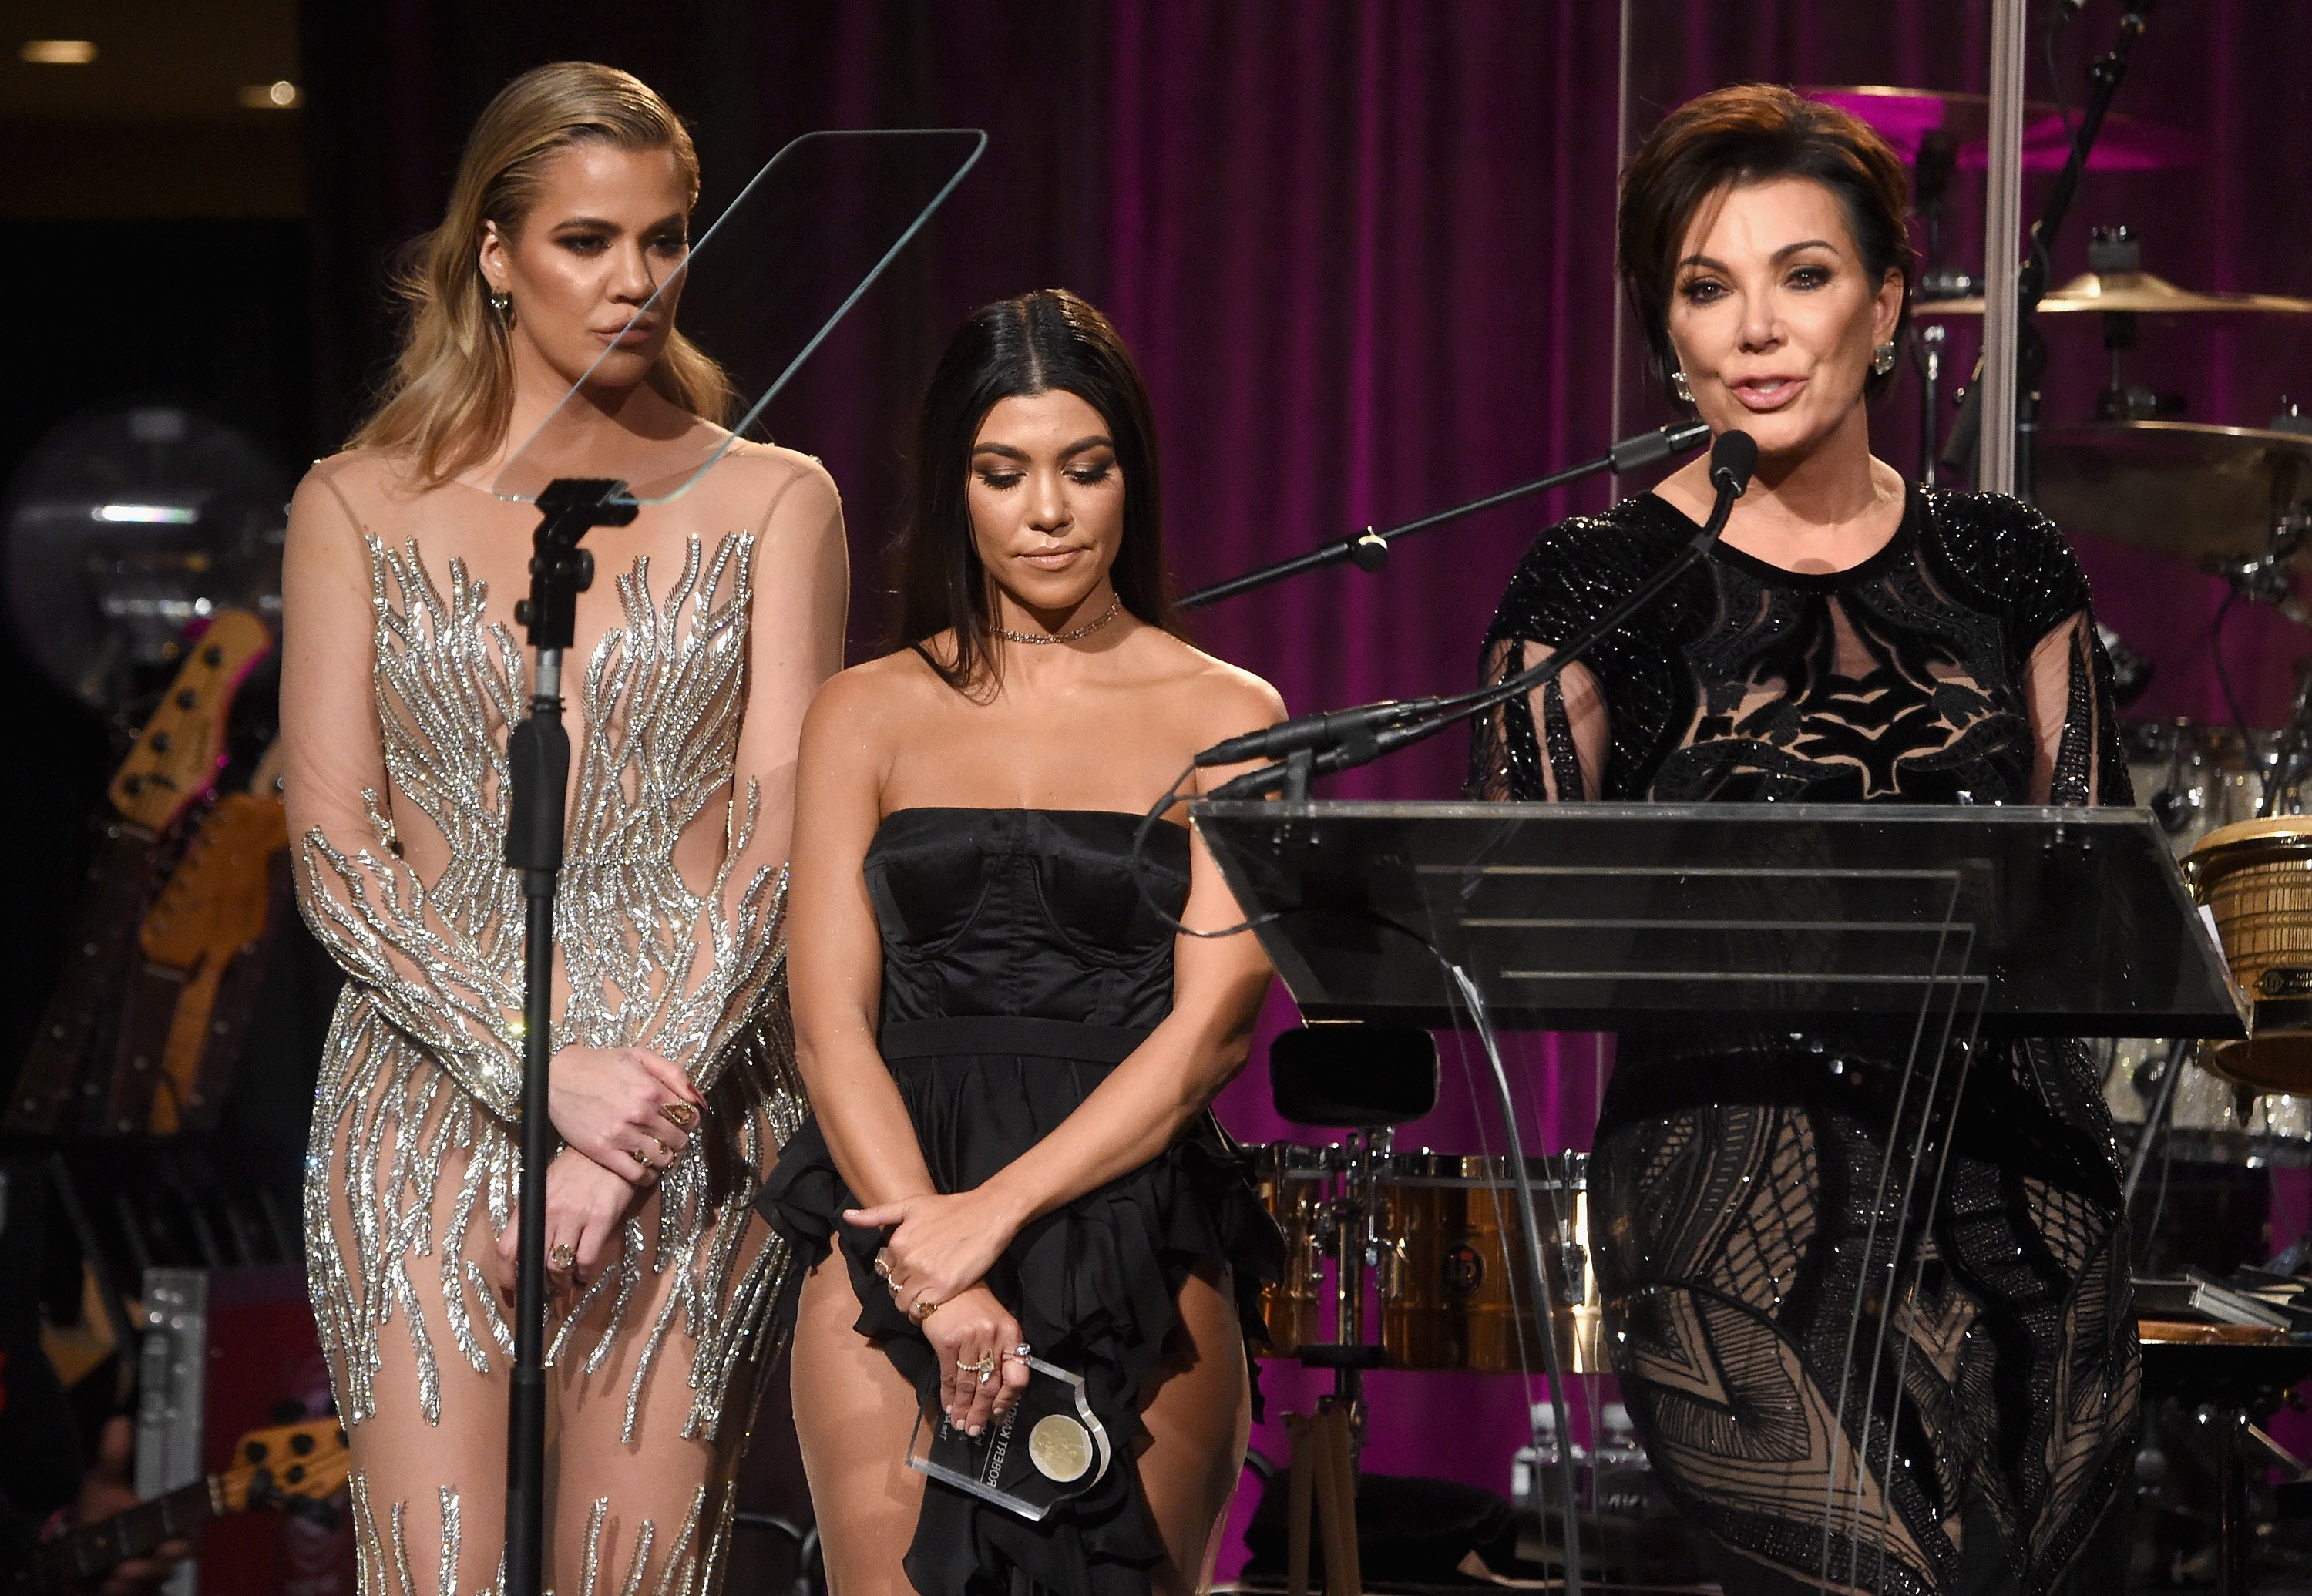 Khloe Kardashian, Kourtney Kardashian and Kris Jenner onstage at the 2016 Angel Ball hosted by Gabrielle's Angel Foundation For Cancer Research on November 21, 2016 in New York City